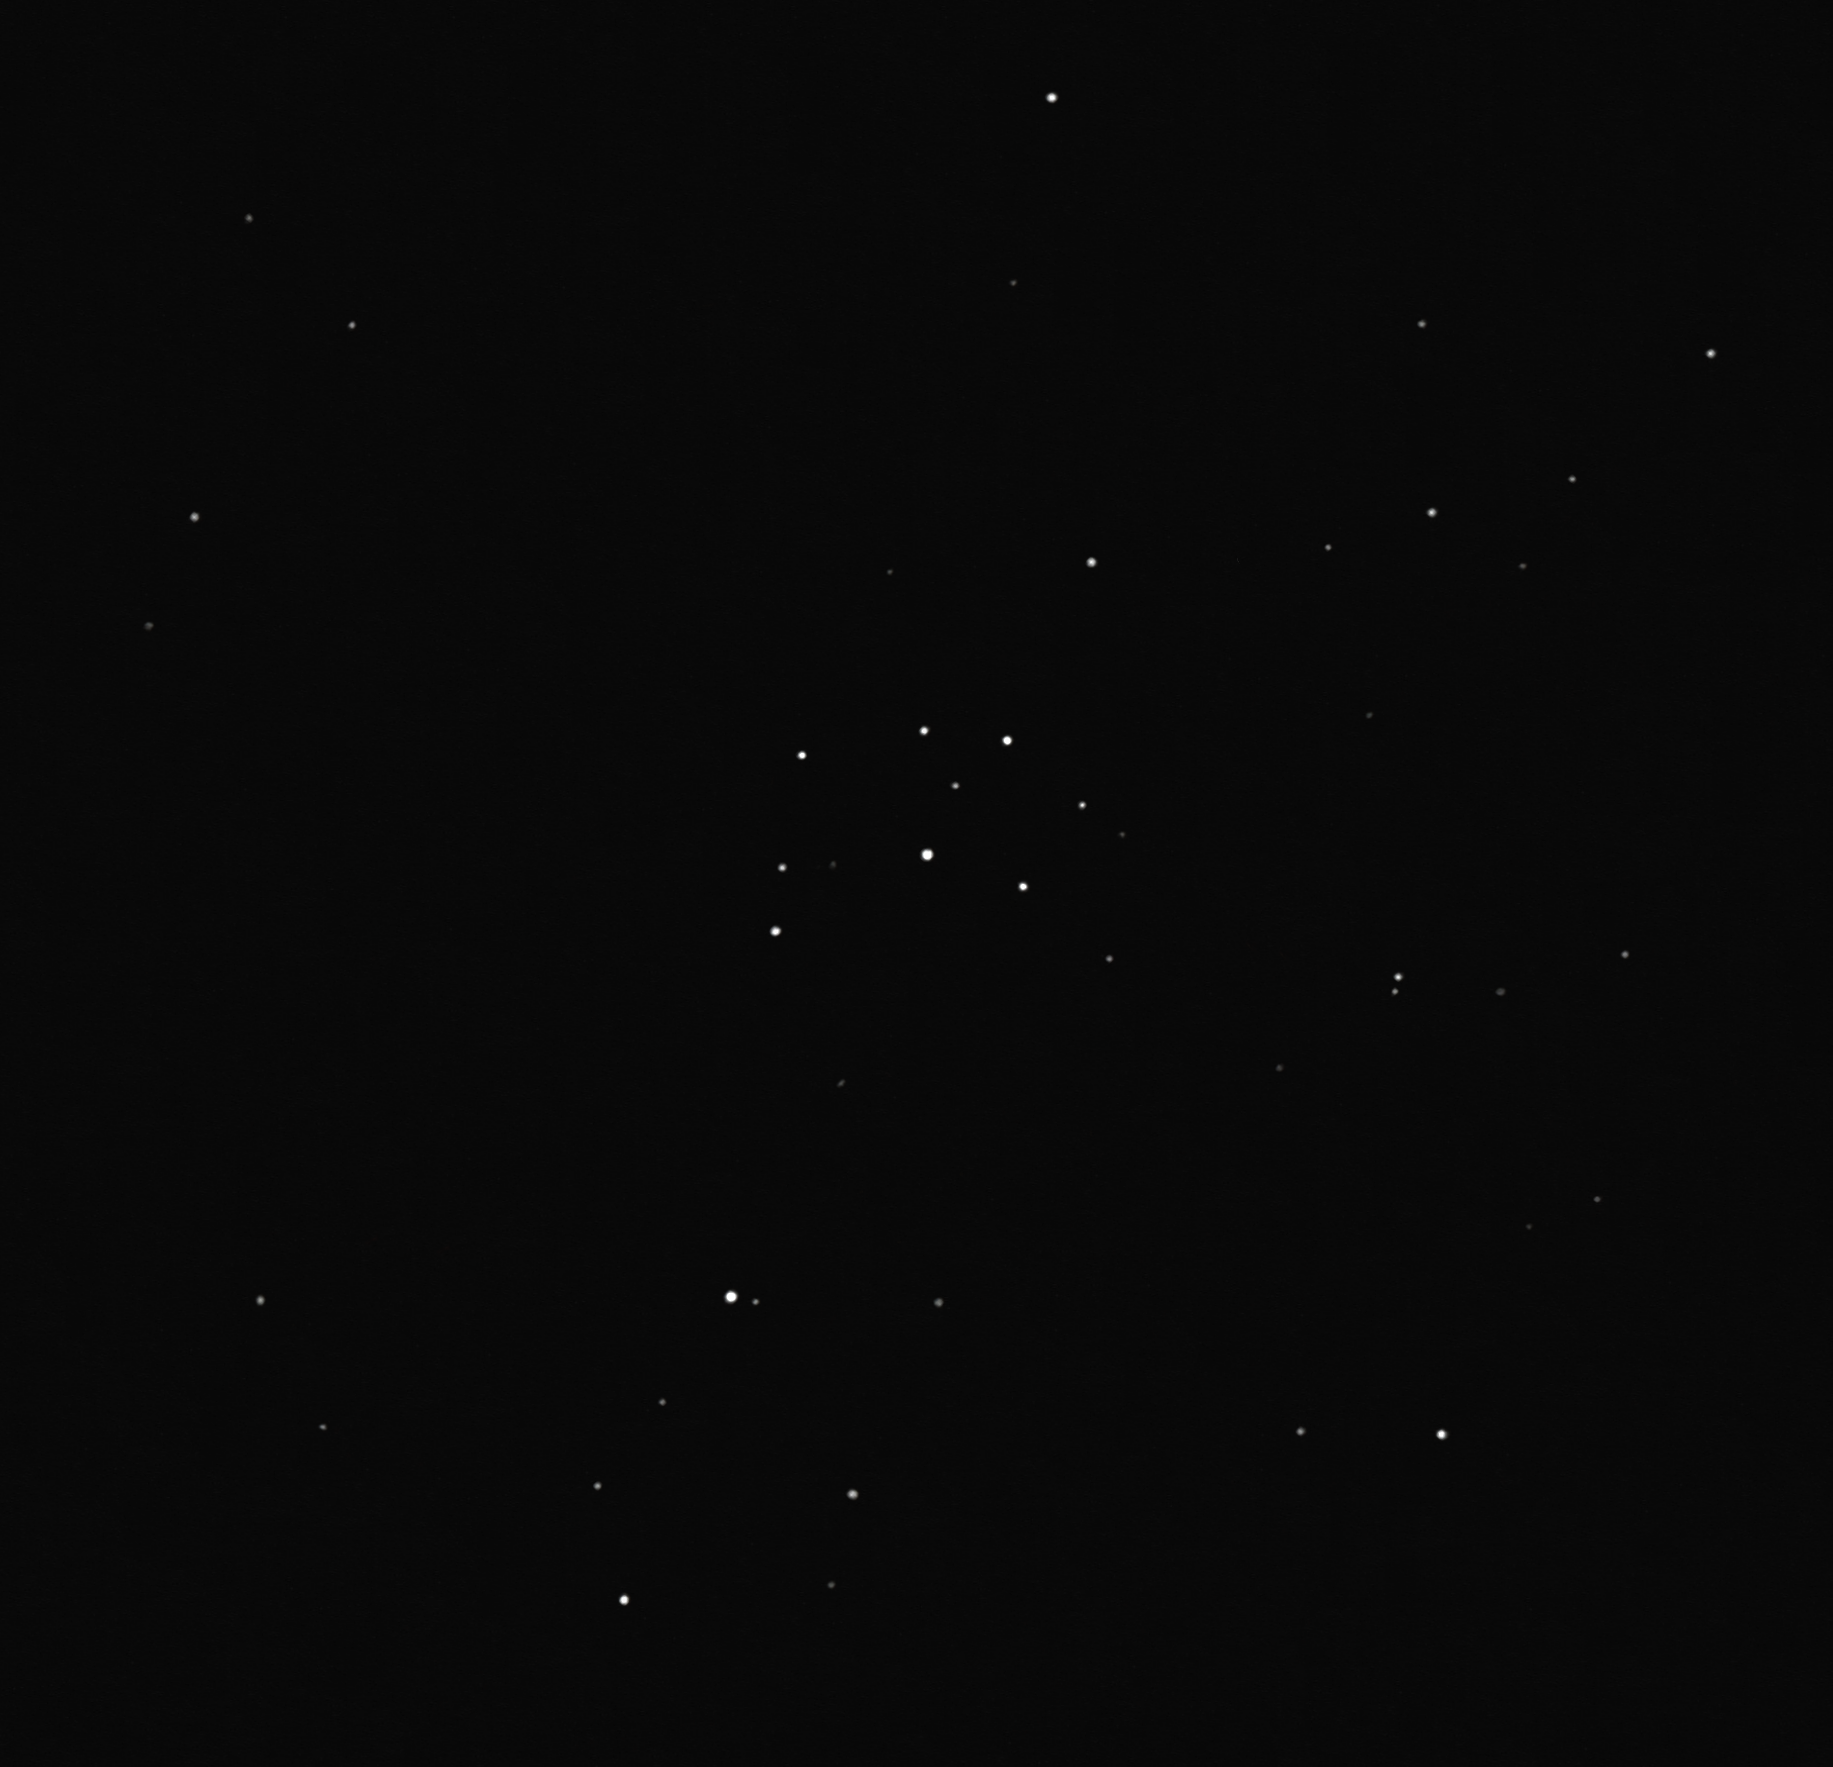 waterloo 8 open cluster